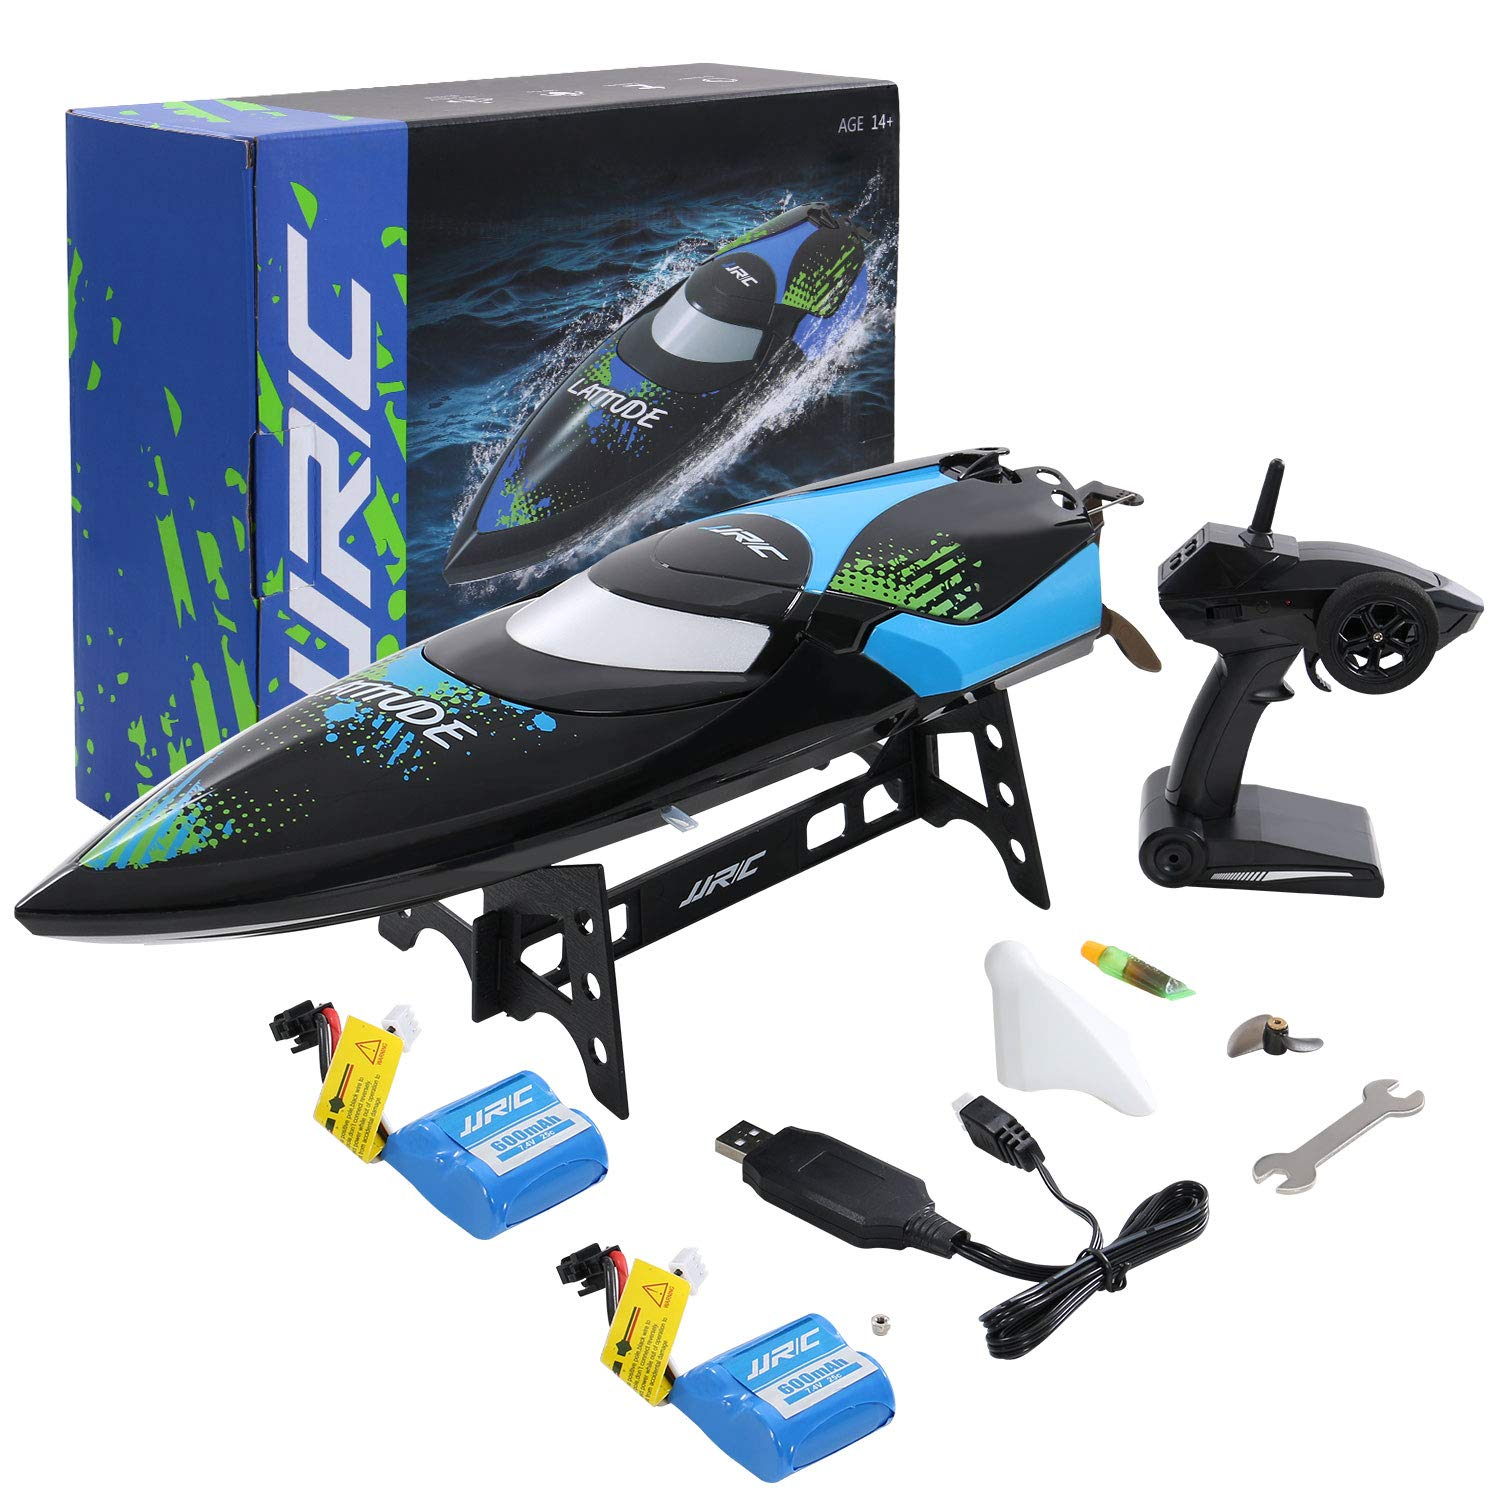 ANTAPRCIS 25km/h RC Boat, 2.4GHz 180° Flip Remote Control Race Boat for Pool Lake Boy Adult, Black by ANTAPRCIS (Image #7)